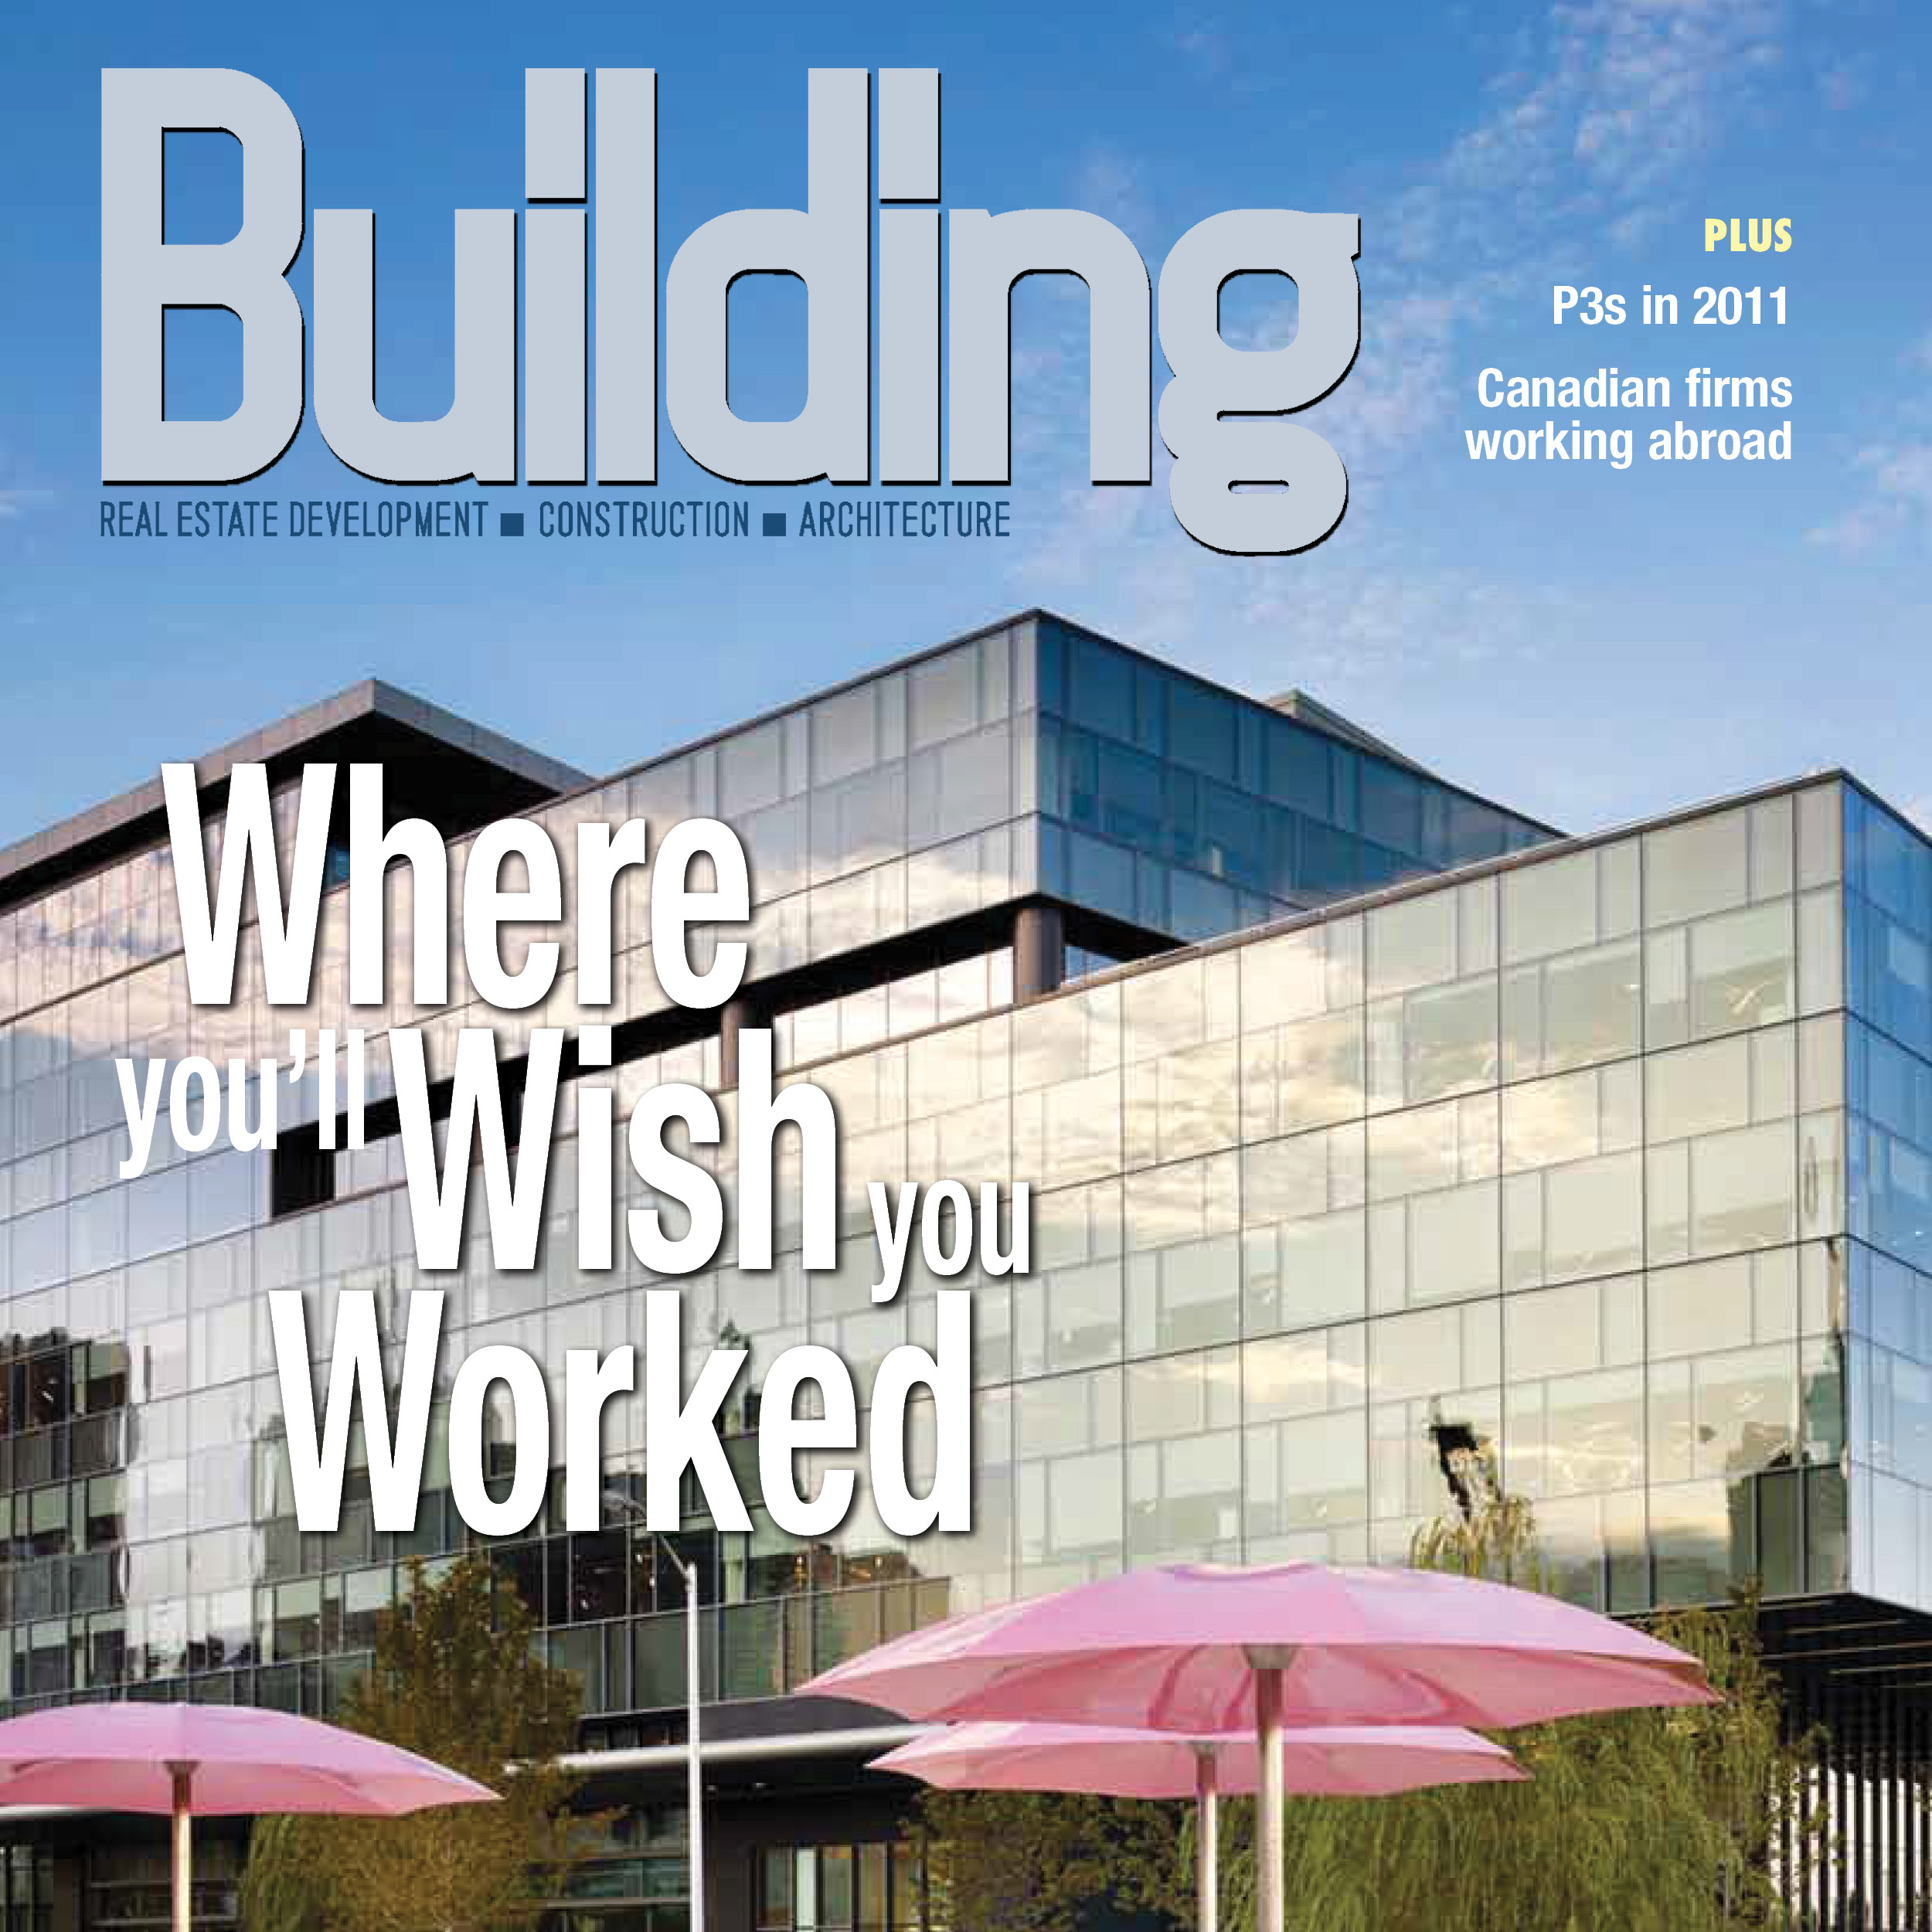 thumbnail image of the cover of Building magazine featuring Corus Quay